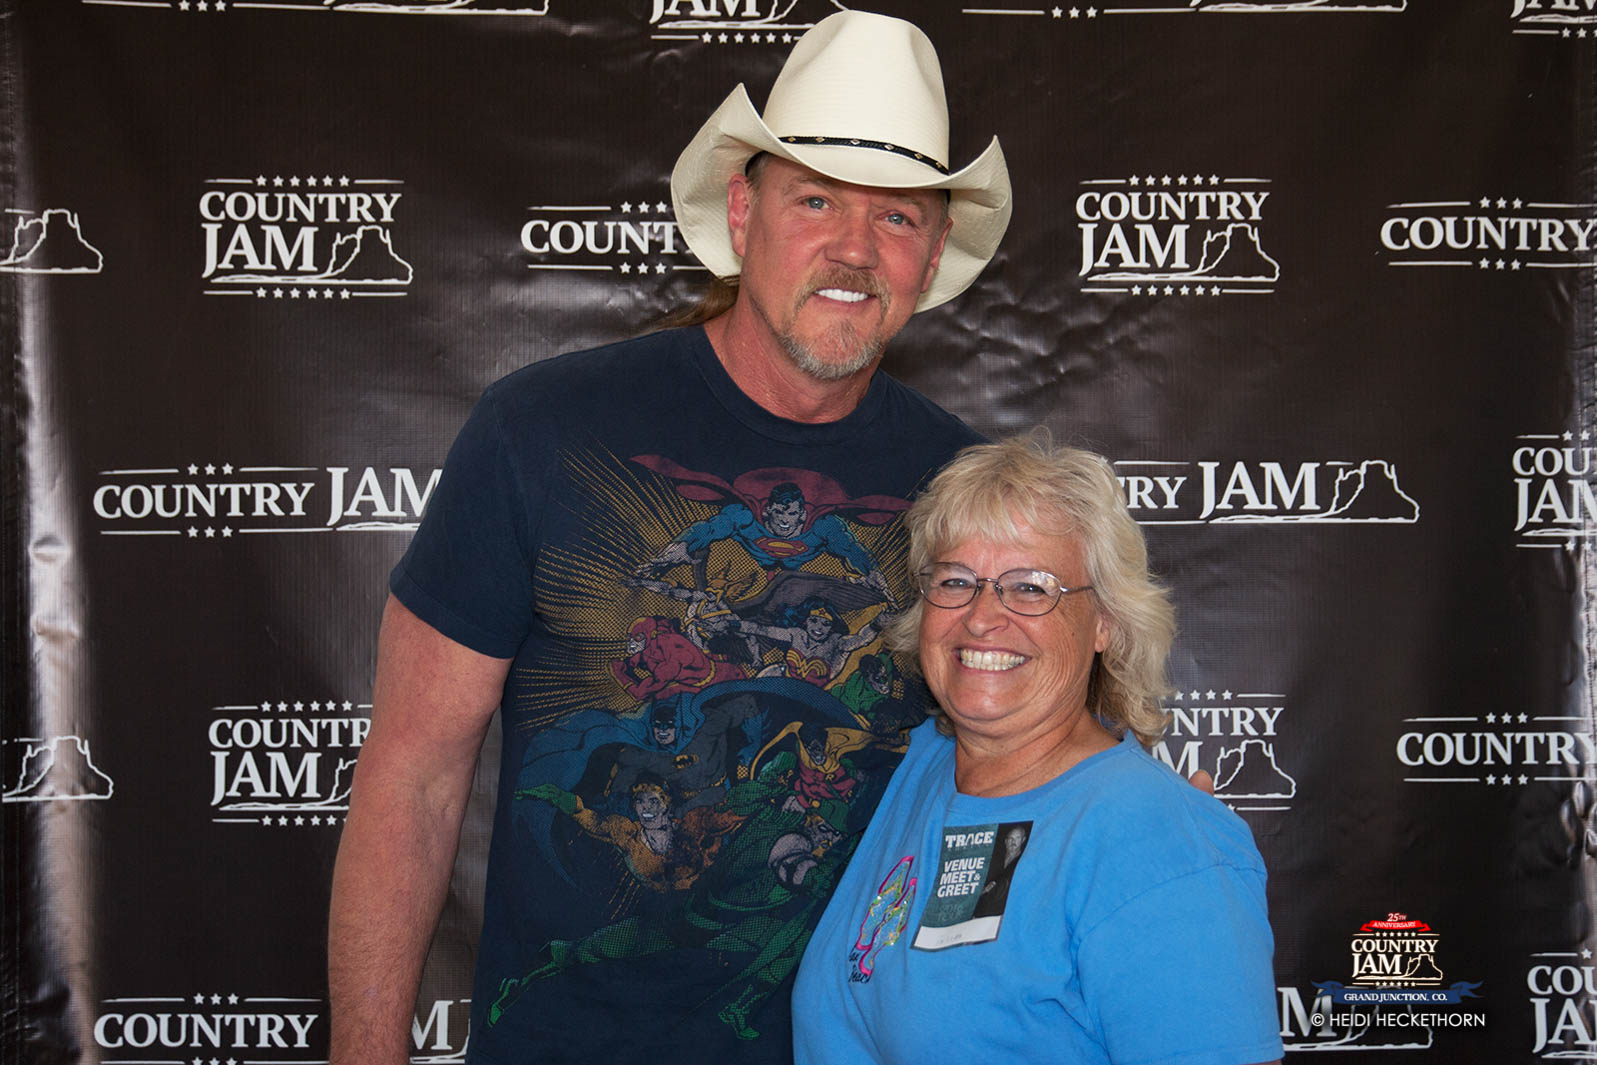 Trace Adkins Meet Greet Photos At Country Jam 2016 Country Jam